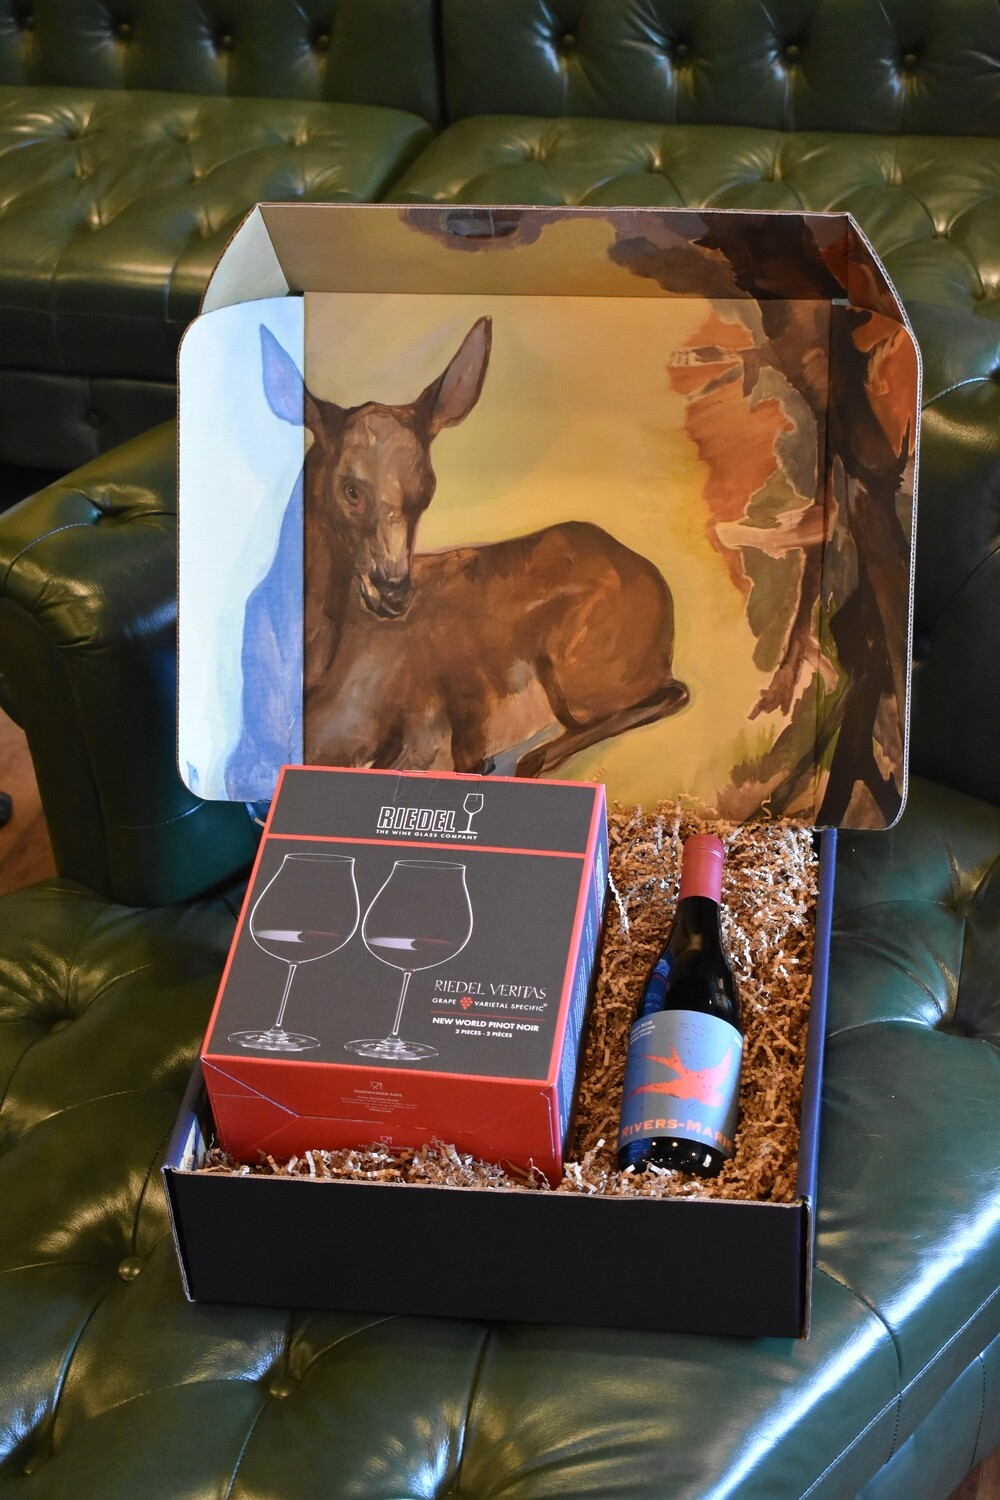 WH BOX WITH RIEDEL VERITAS PINOT NOIR SET OF TWO GLASSES AND A BOTTLE OF RIVERS MARIE SUMMA PINOT NOIR 2018